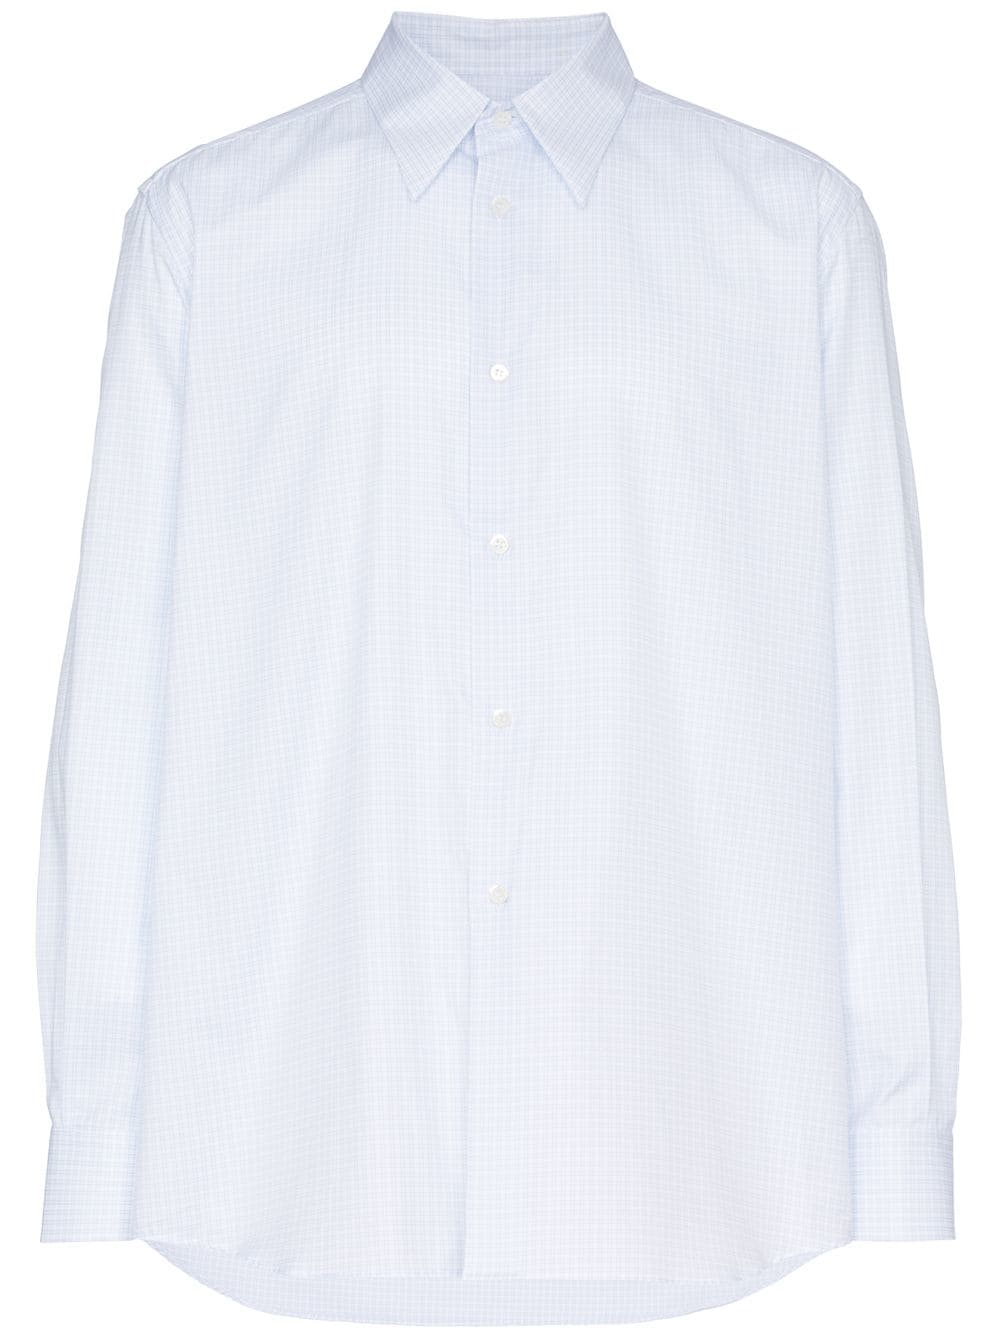 White Square Print Plastic Pocket Cotton Shirt